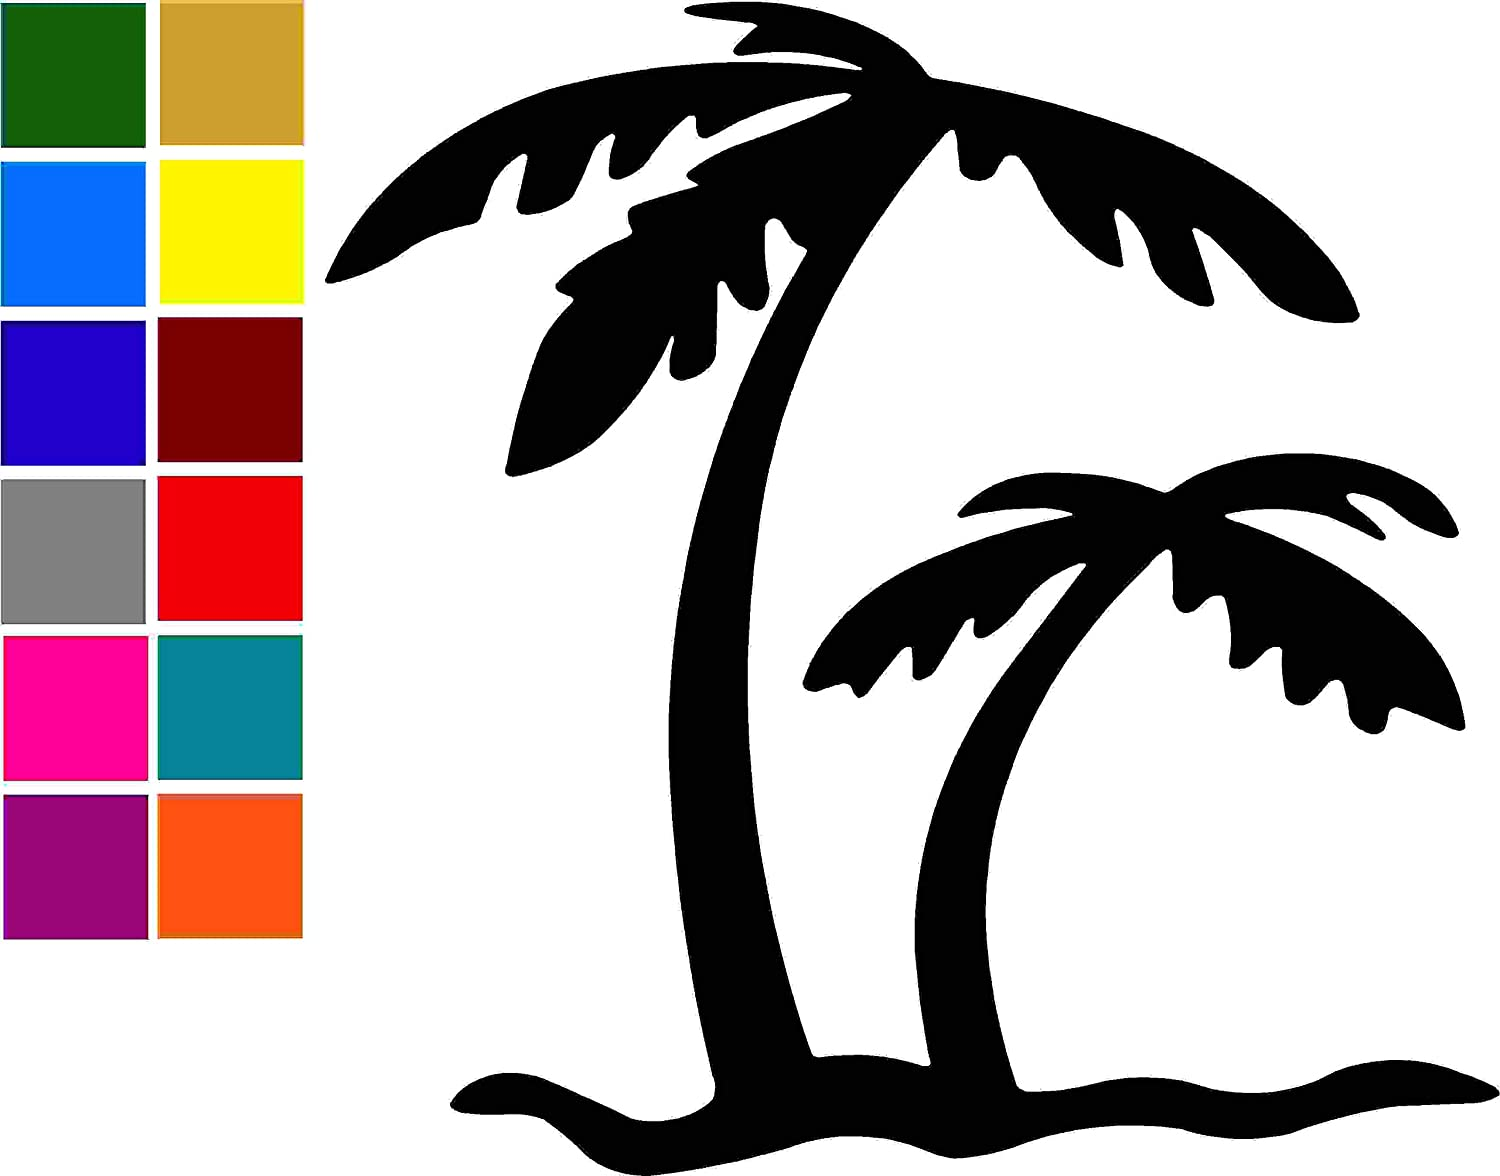 Palm Tree Design 1 Car Window Tumblers Wall Decal Sticker Vinyl Laptops Cellphones Phones Tablets Ipads Helmets Motorcycles Computer Towers V and T Gifts